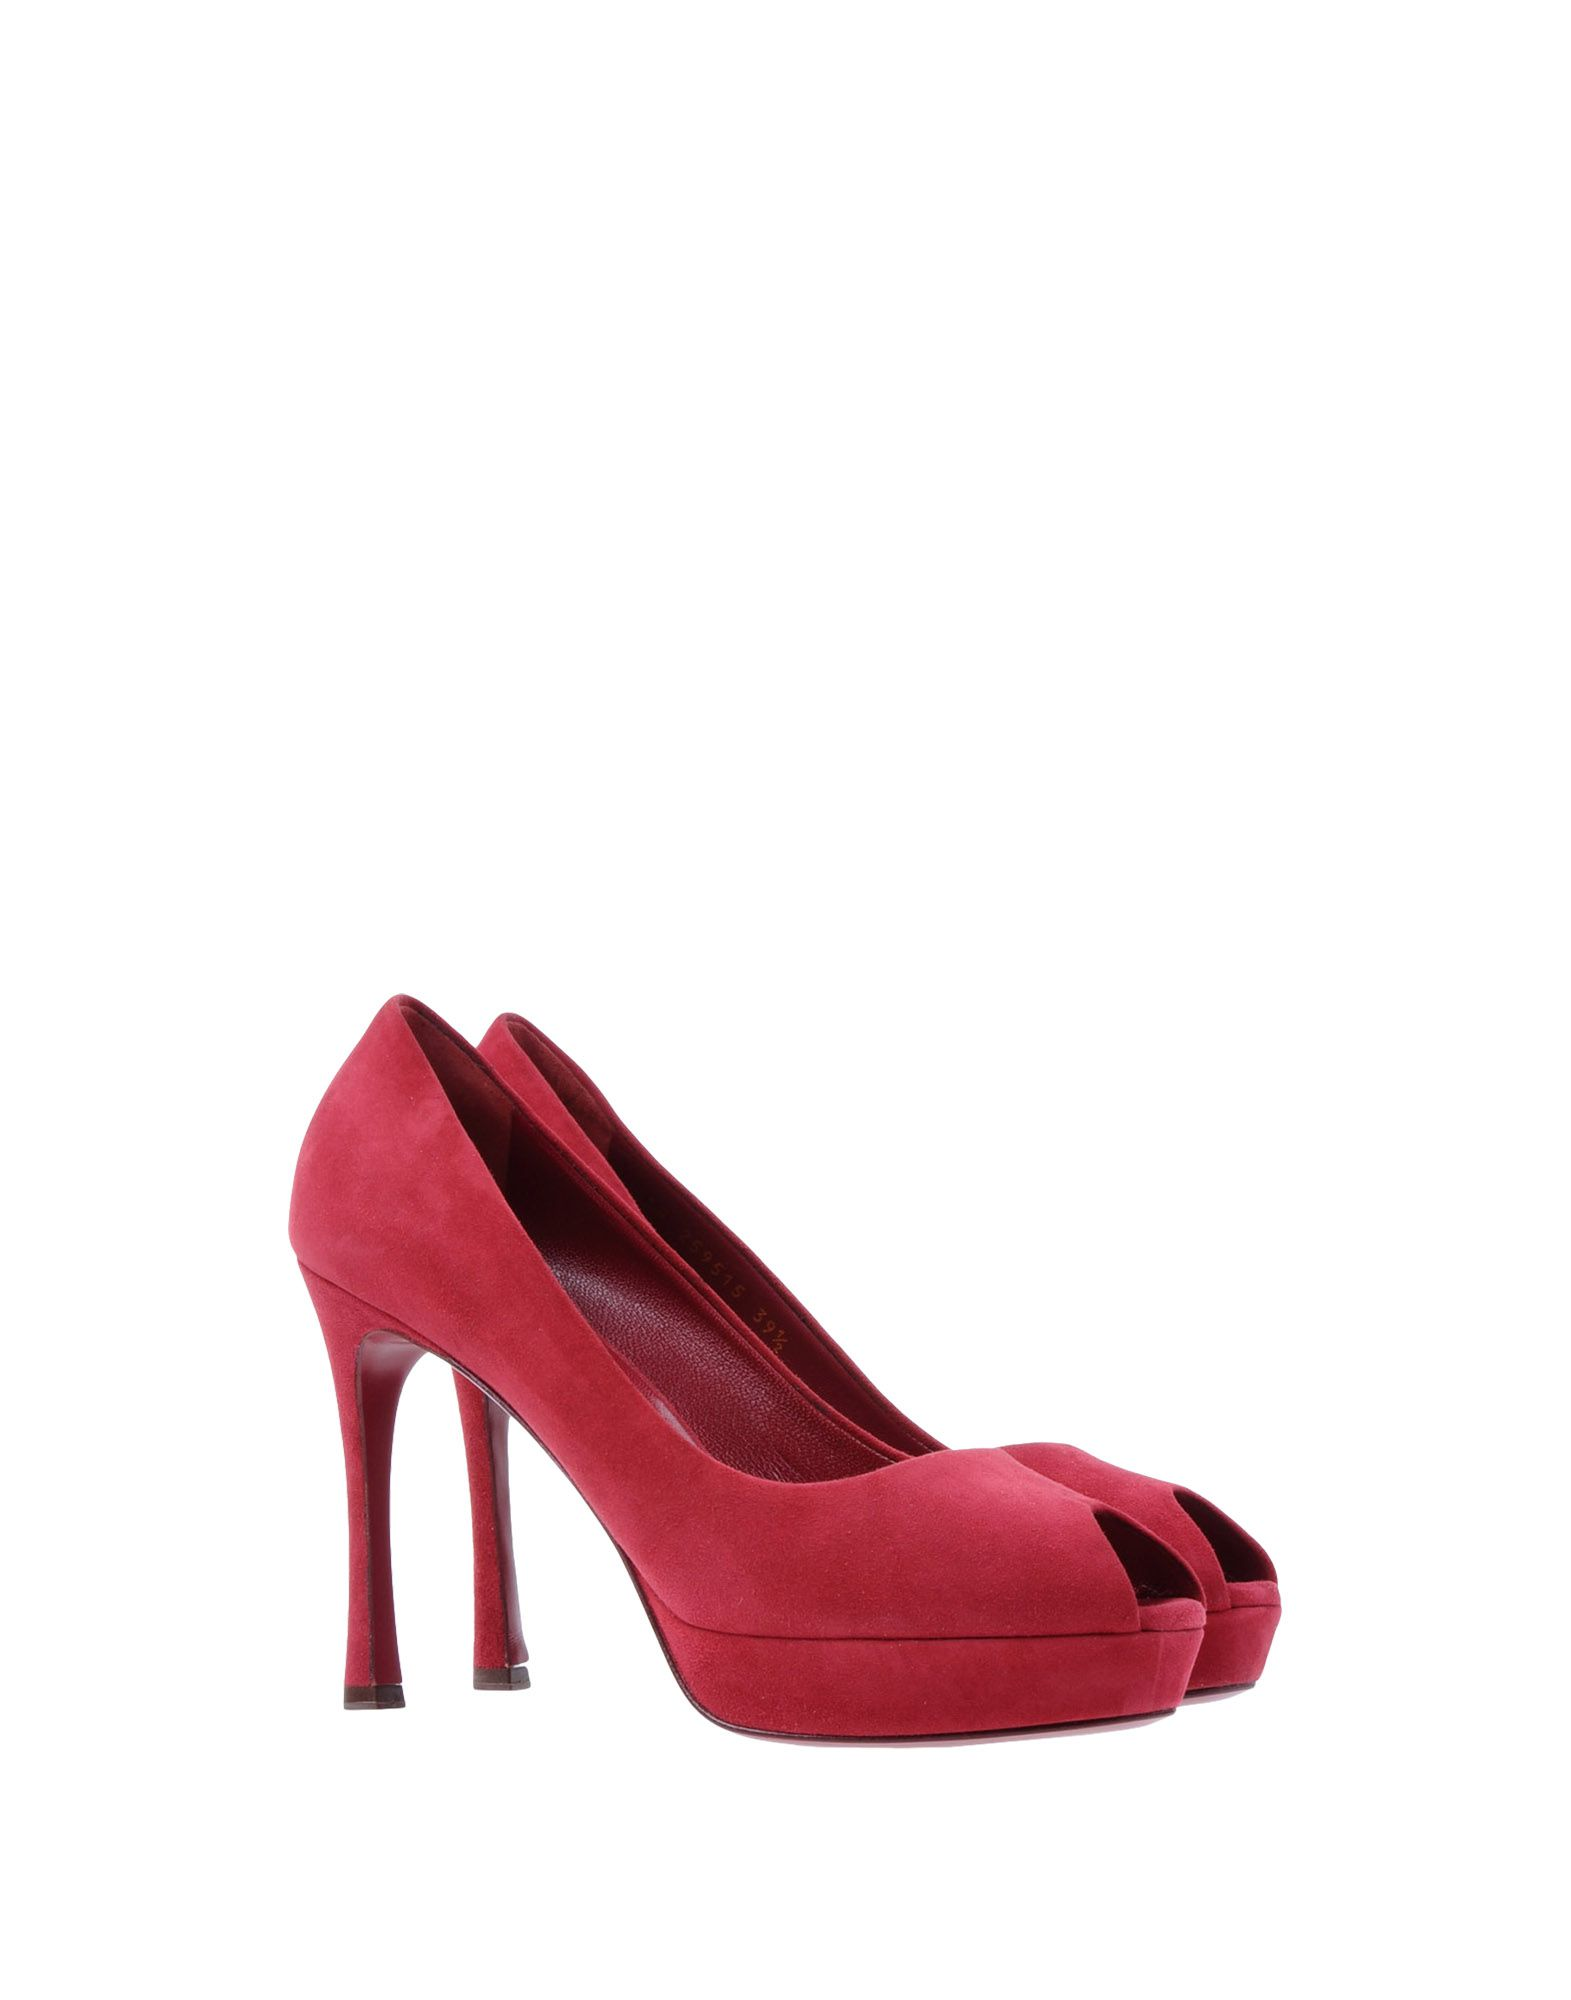 Women S Shoes Closed Toe Slip On With Stacked Heel